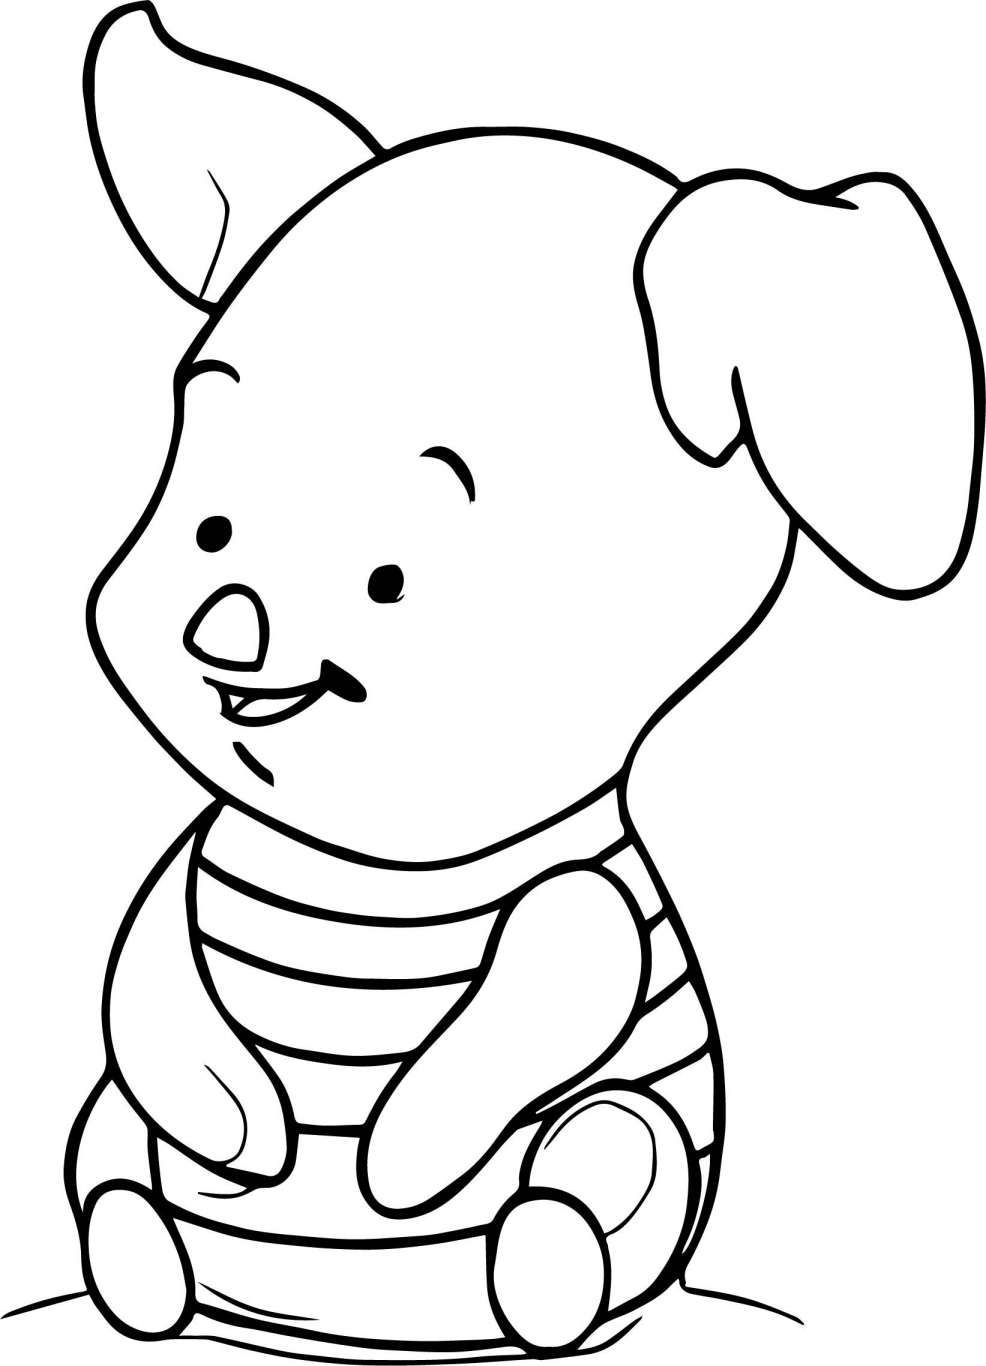 31++ Cute baby pig coloring pages ideas